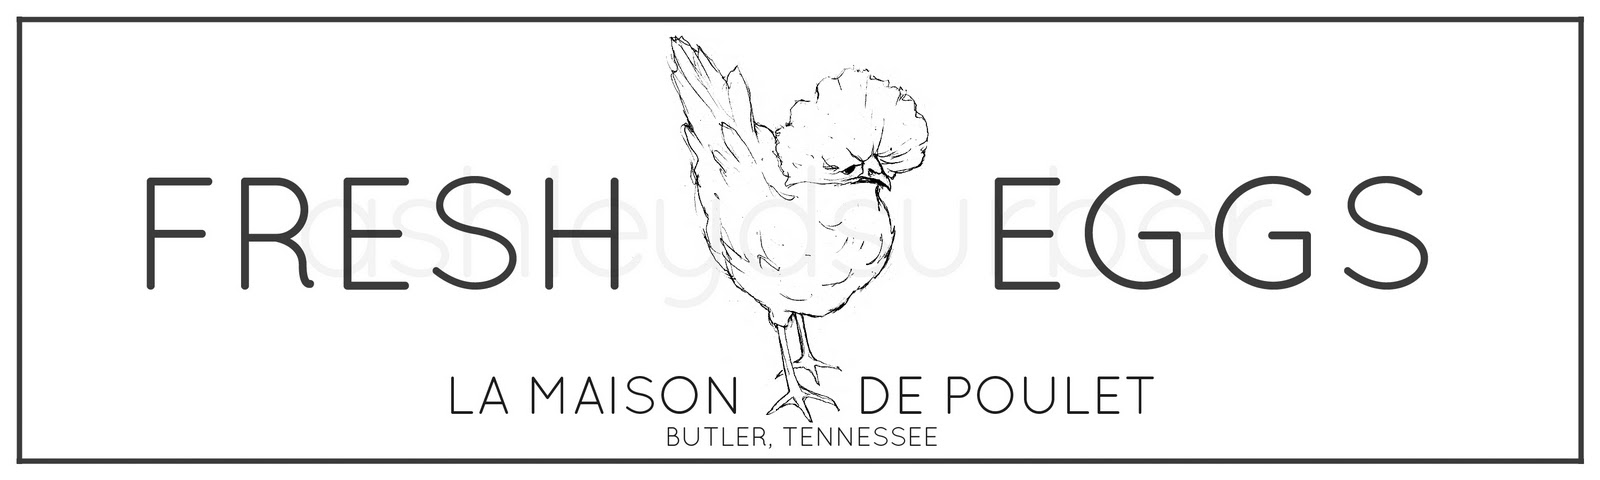 Homestead revival inspiration friday chicken carton labels perhaps ill host a contest one day everyone could link up their best dressed egg carton what do you think pronofoot35fo Image collections